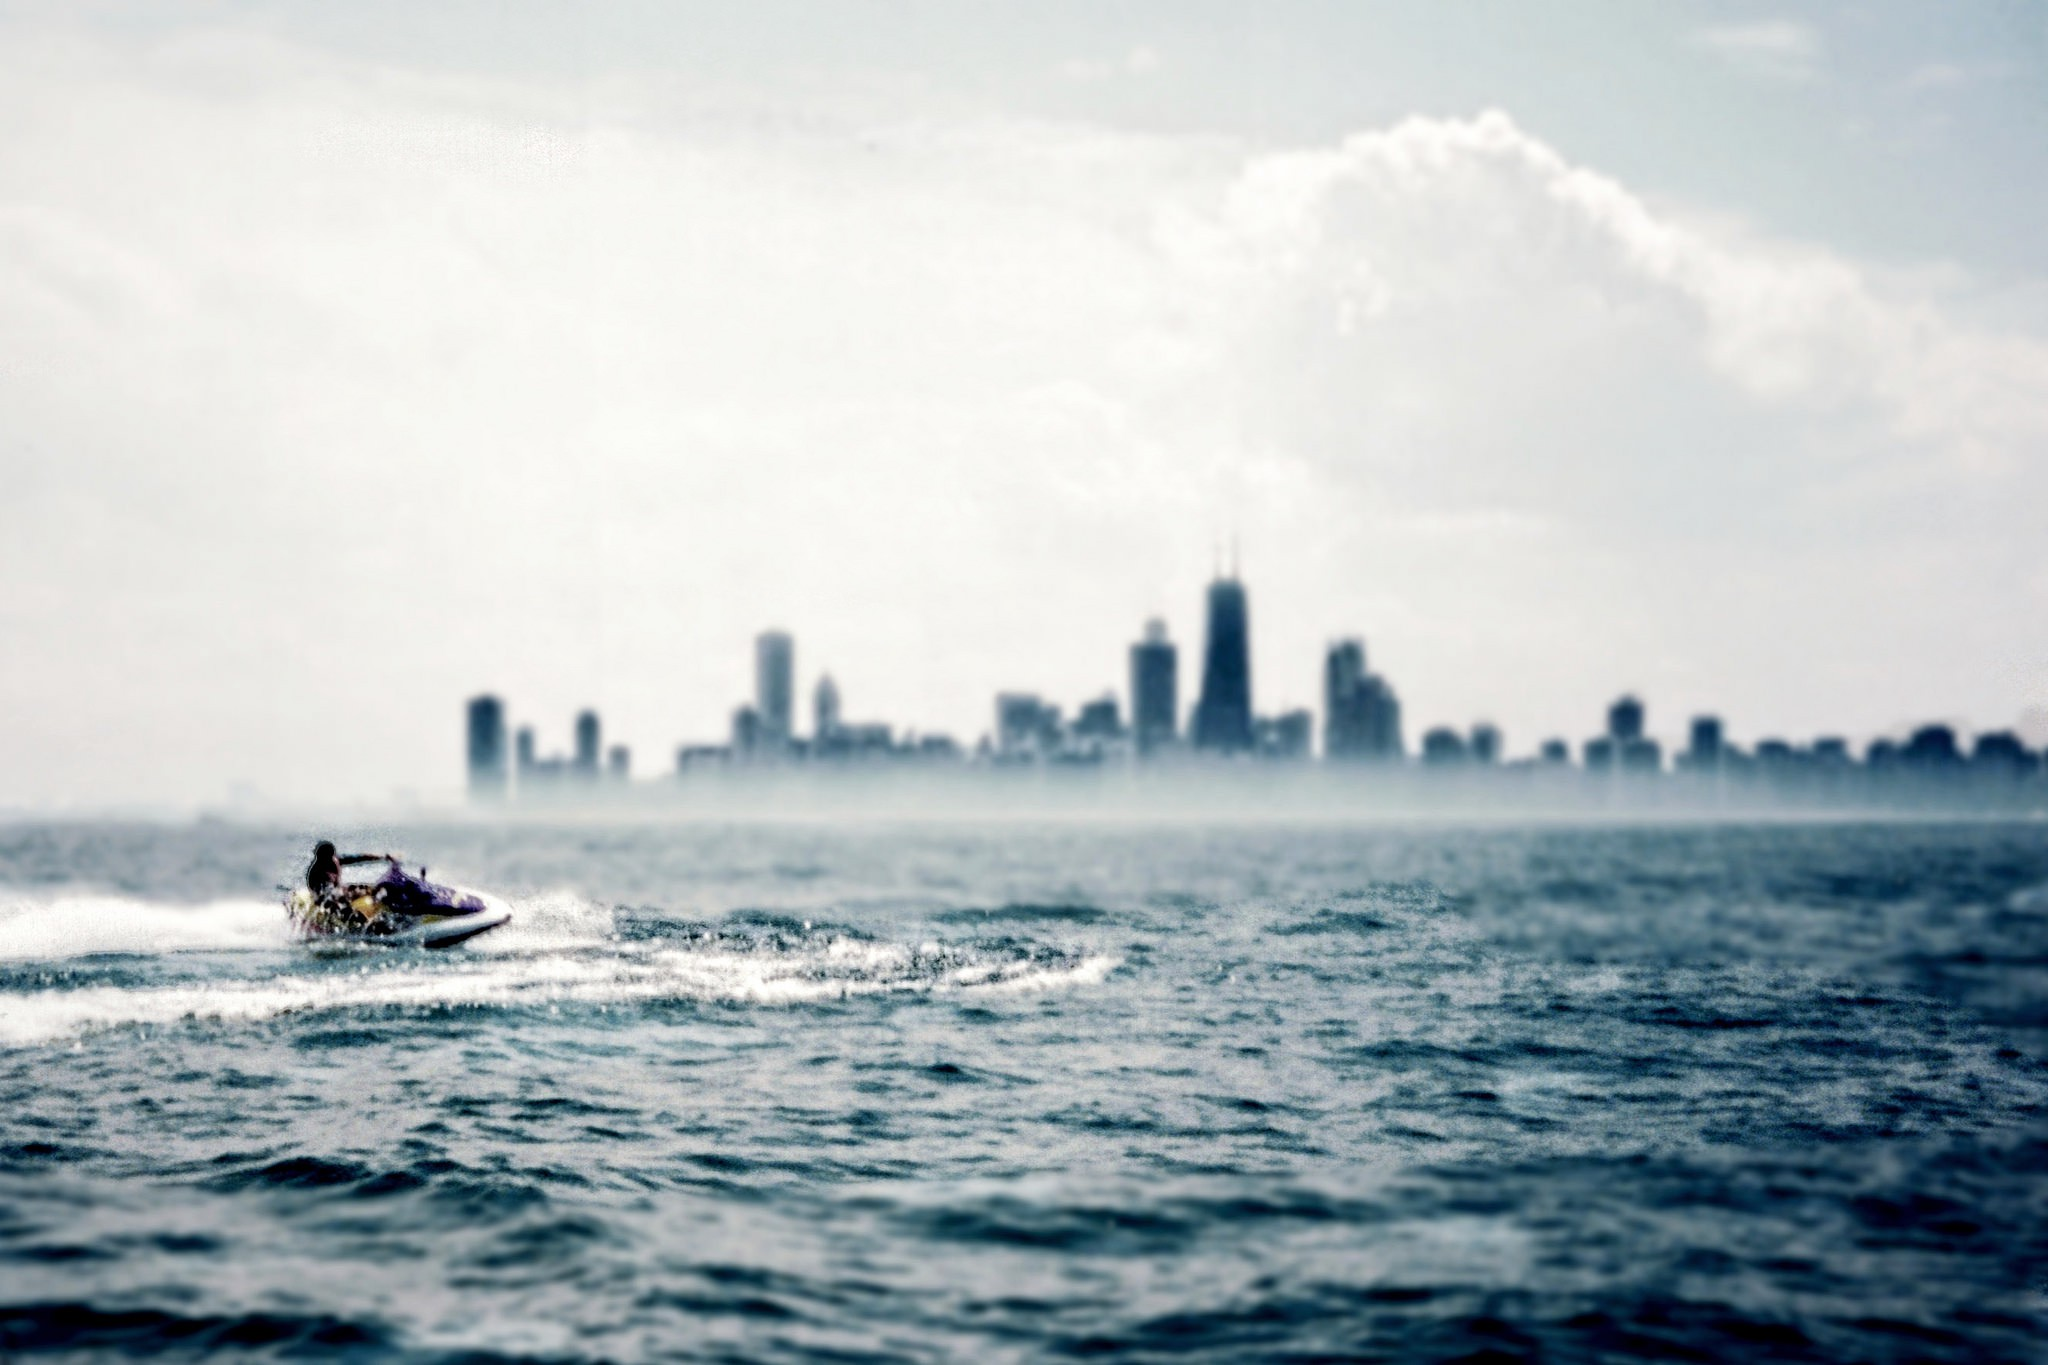 "<a href=""https://www.flickr.com/photos/blok70/26489220463/"" target=""_blank"">Jet skiing on Lake Michigan 